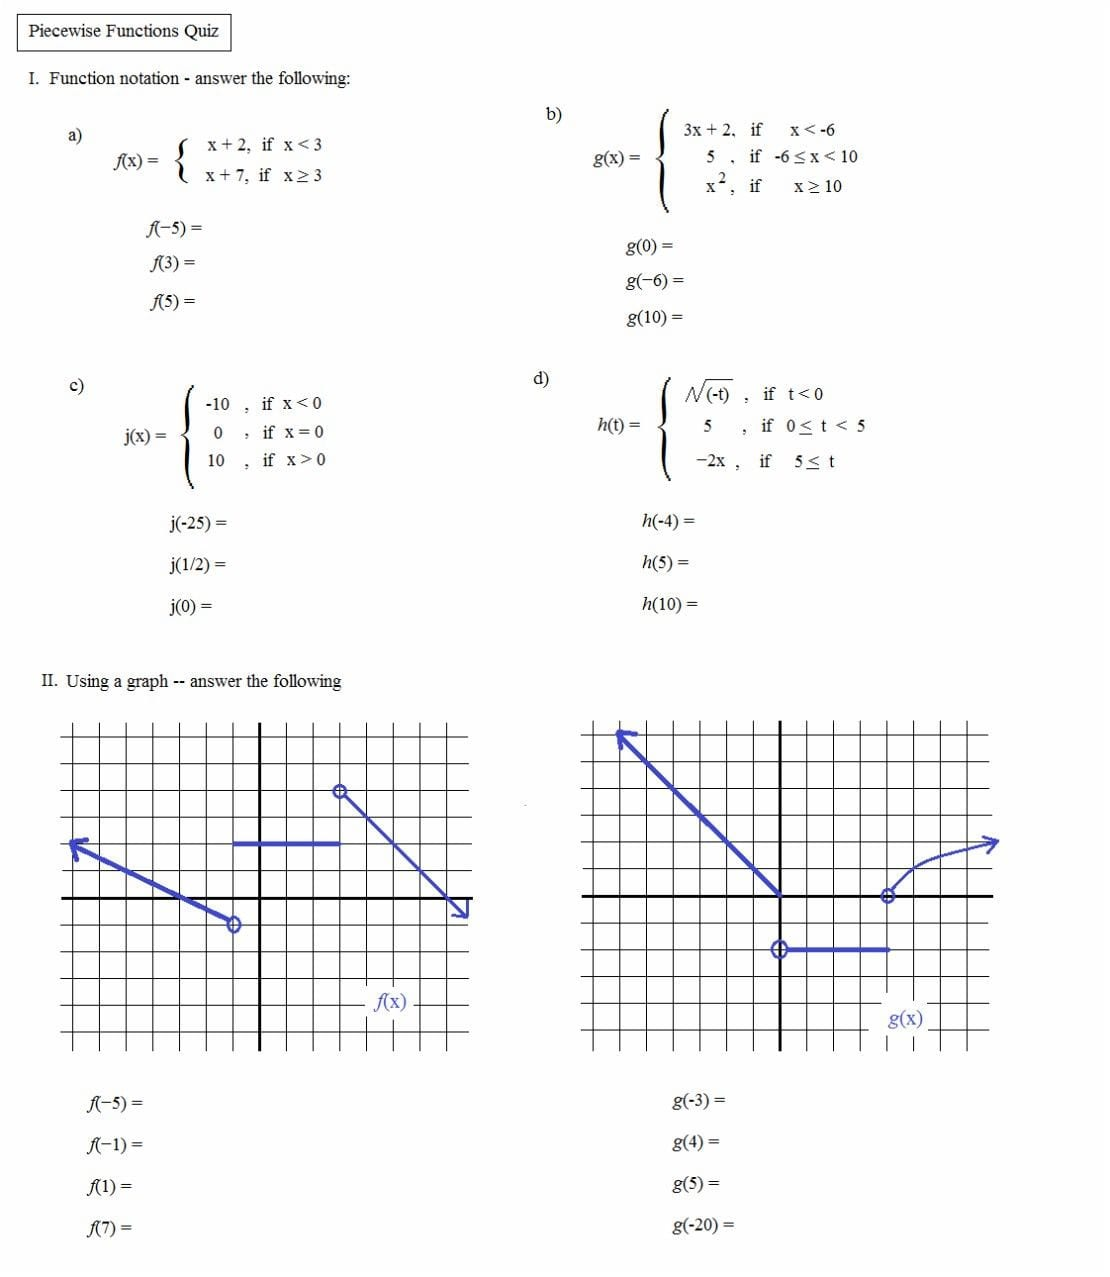 Worksheet Piecewise Functions Algebra 2 Answers